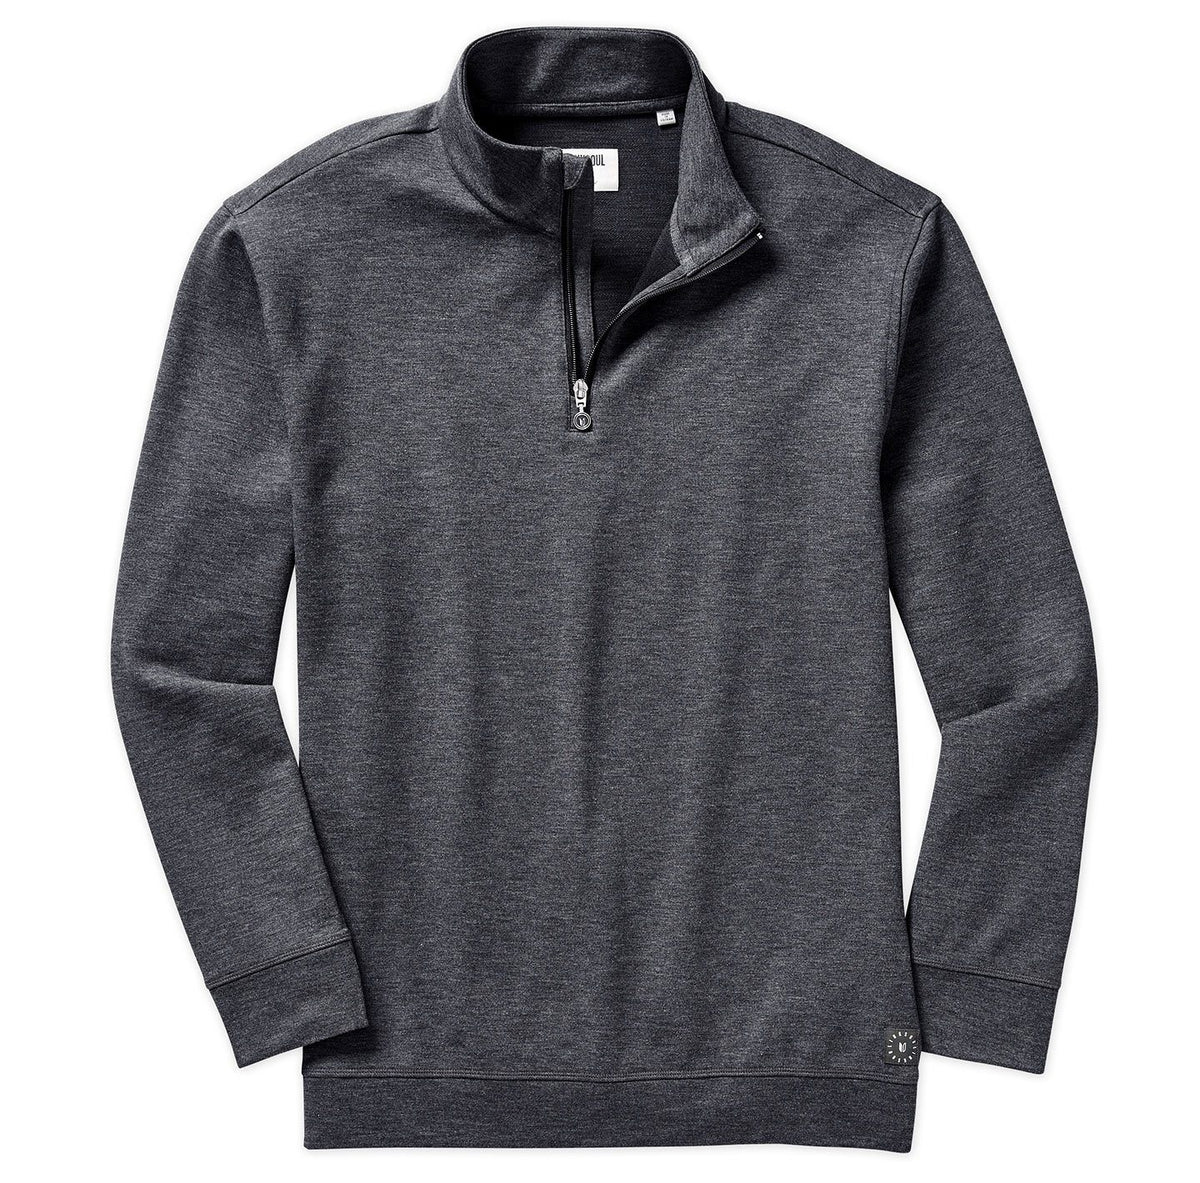 Textured Quarter-Zip Layer